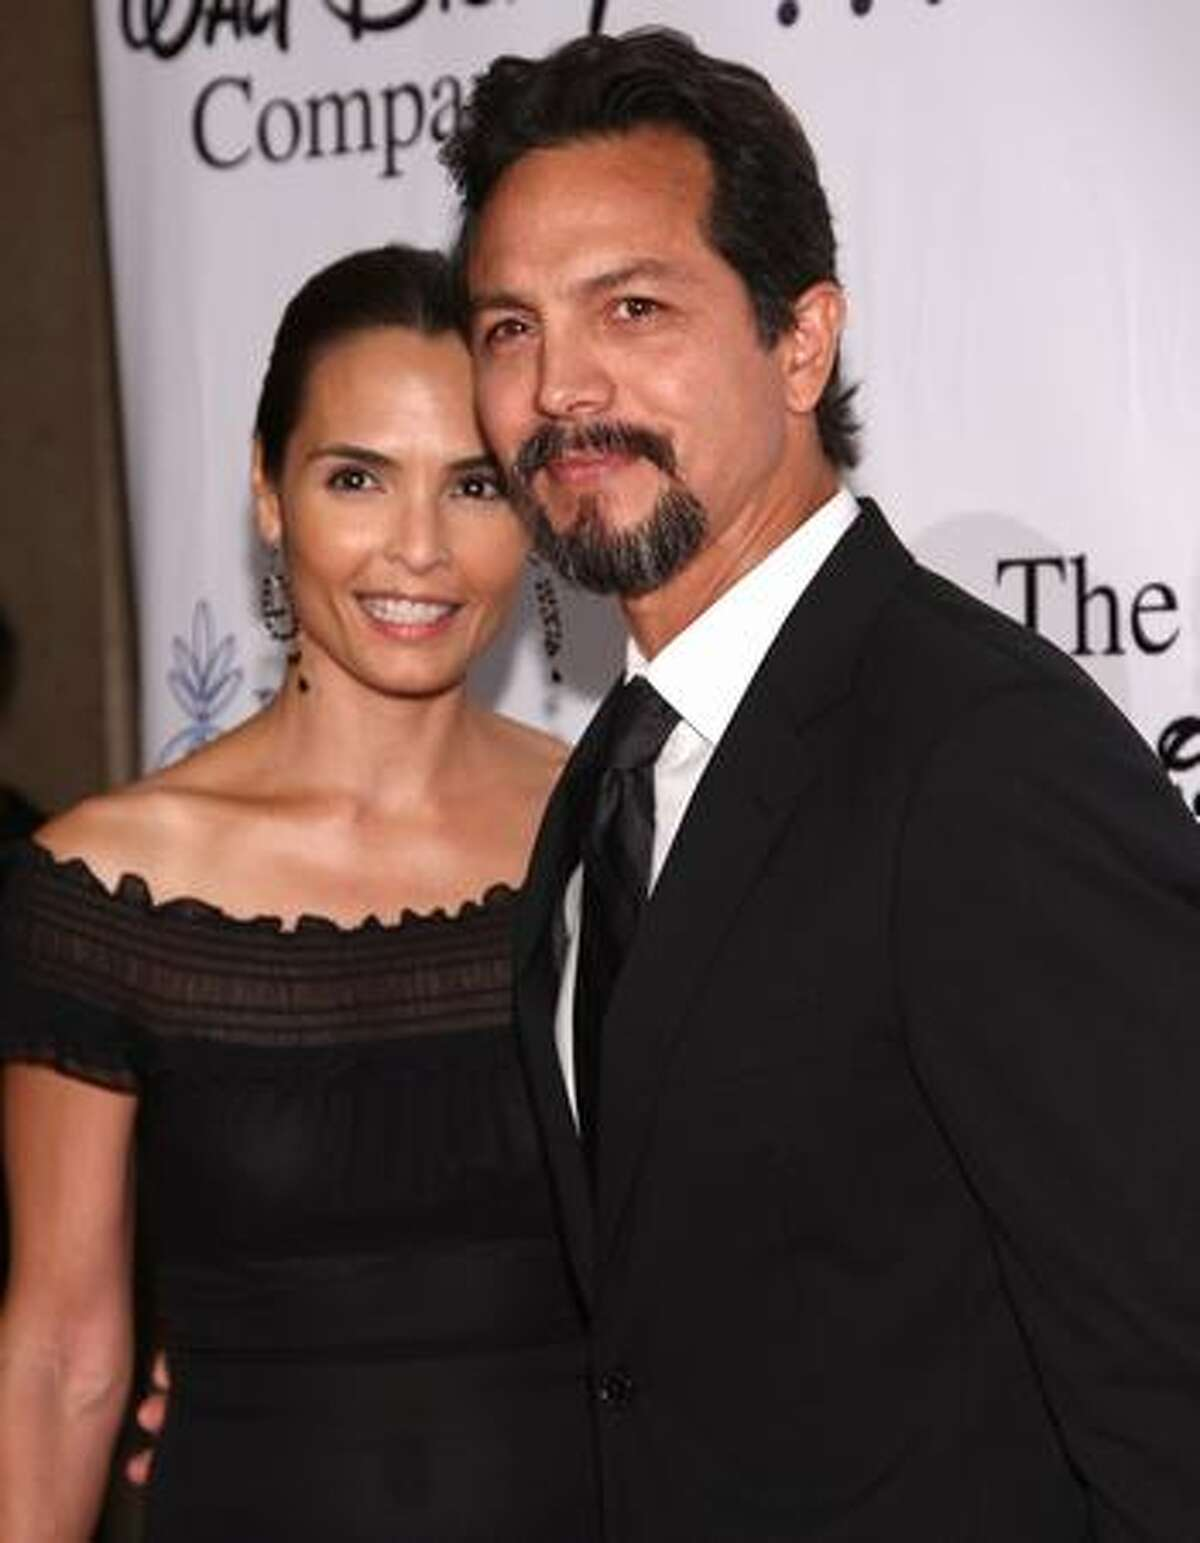 Actress Talisa Soto and actor Benjamin Bratt arrive at the 24th Annual IMAGEN Awards held at the Beverly Hilton Hotel in Beverly Hills, California.